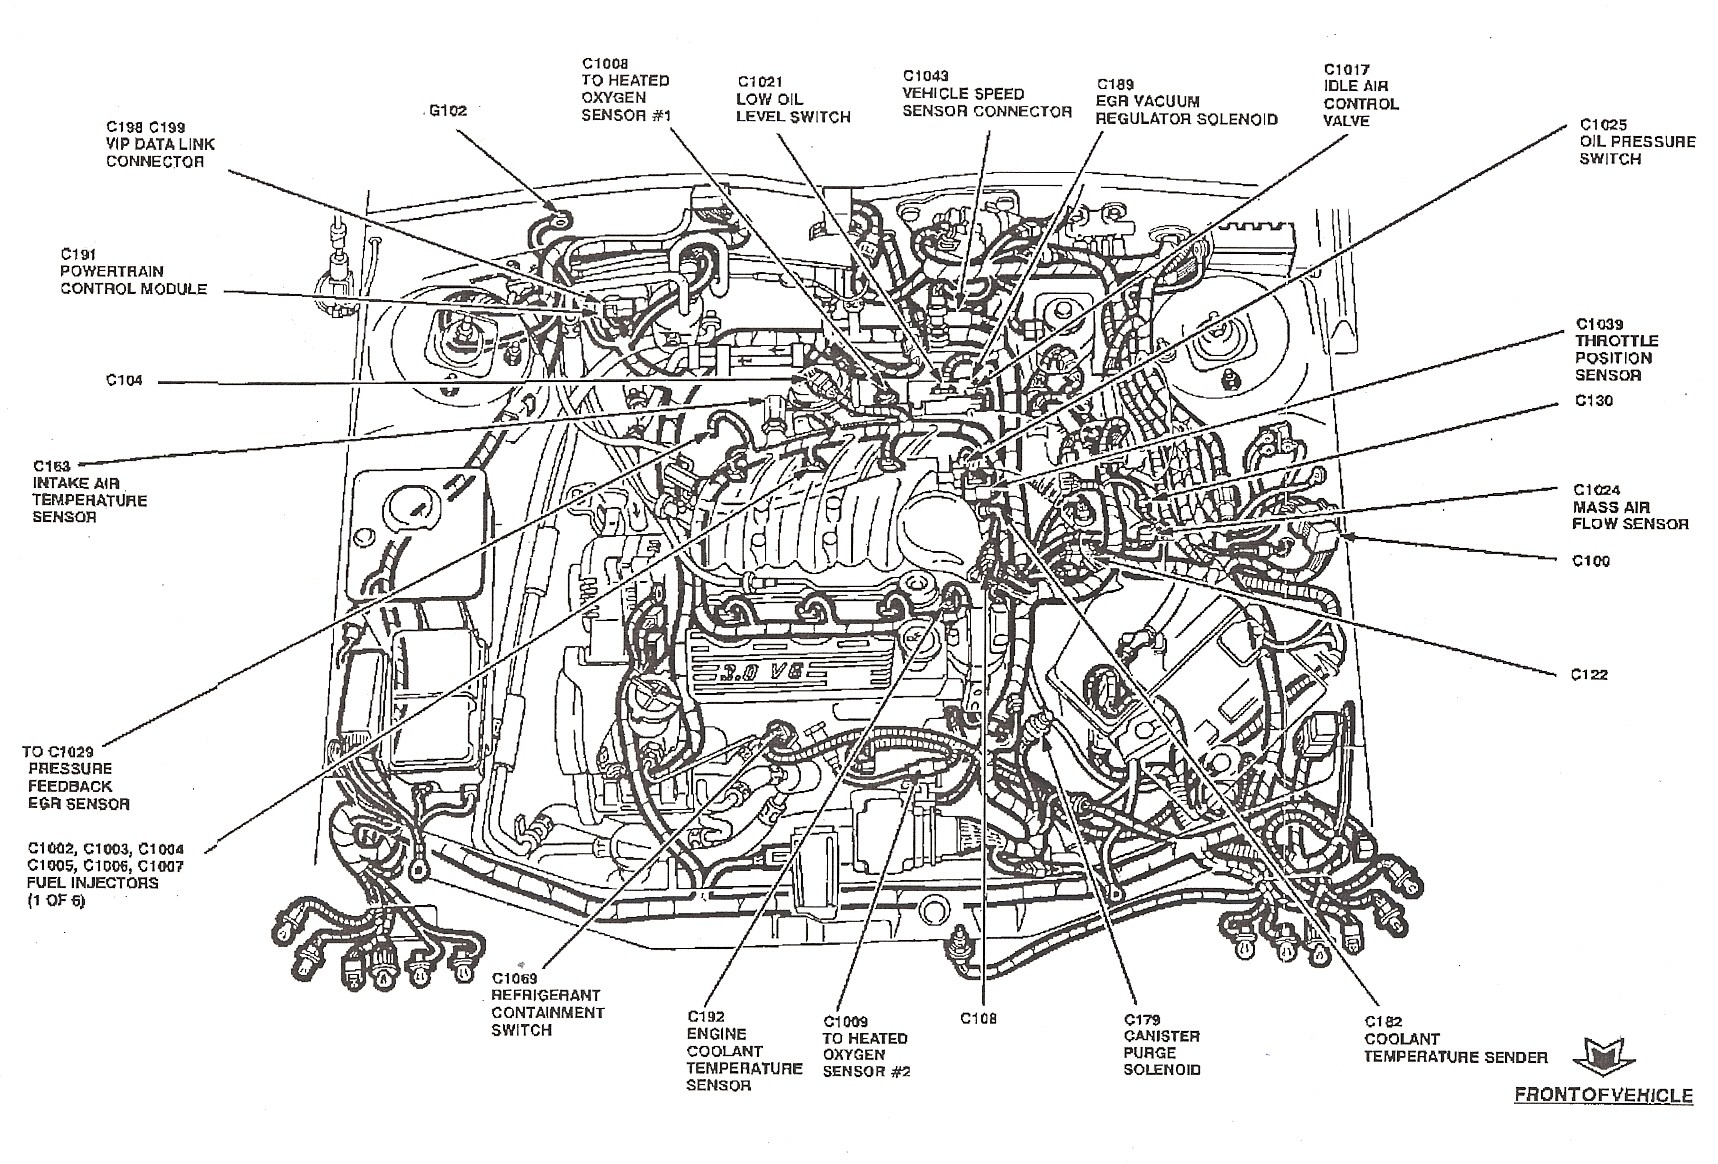 hight resolution of 2001 ford taurus cooling system diagram wiring library taurus starter 2001 ford taurus wiring diagram hvac